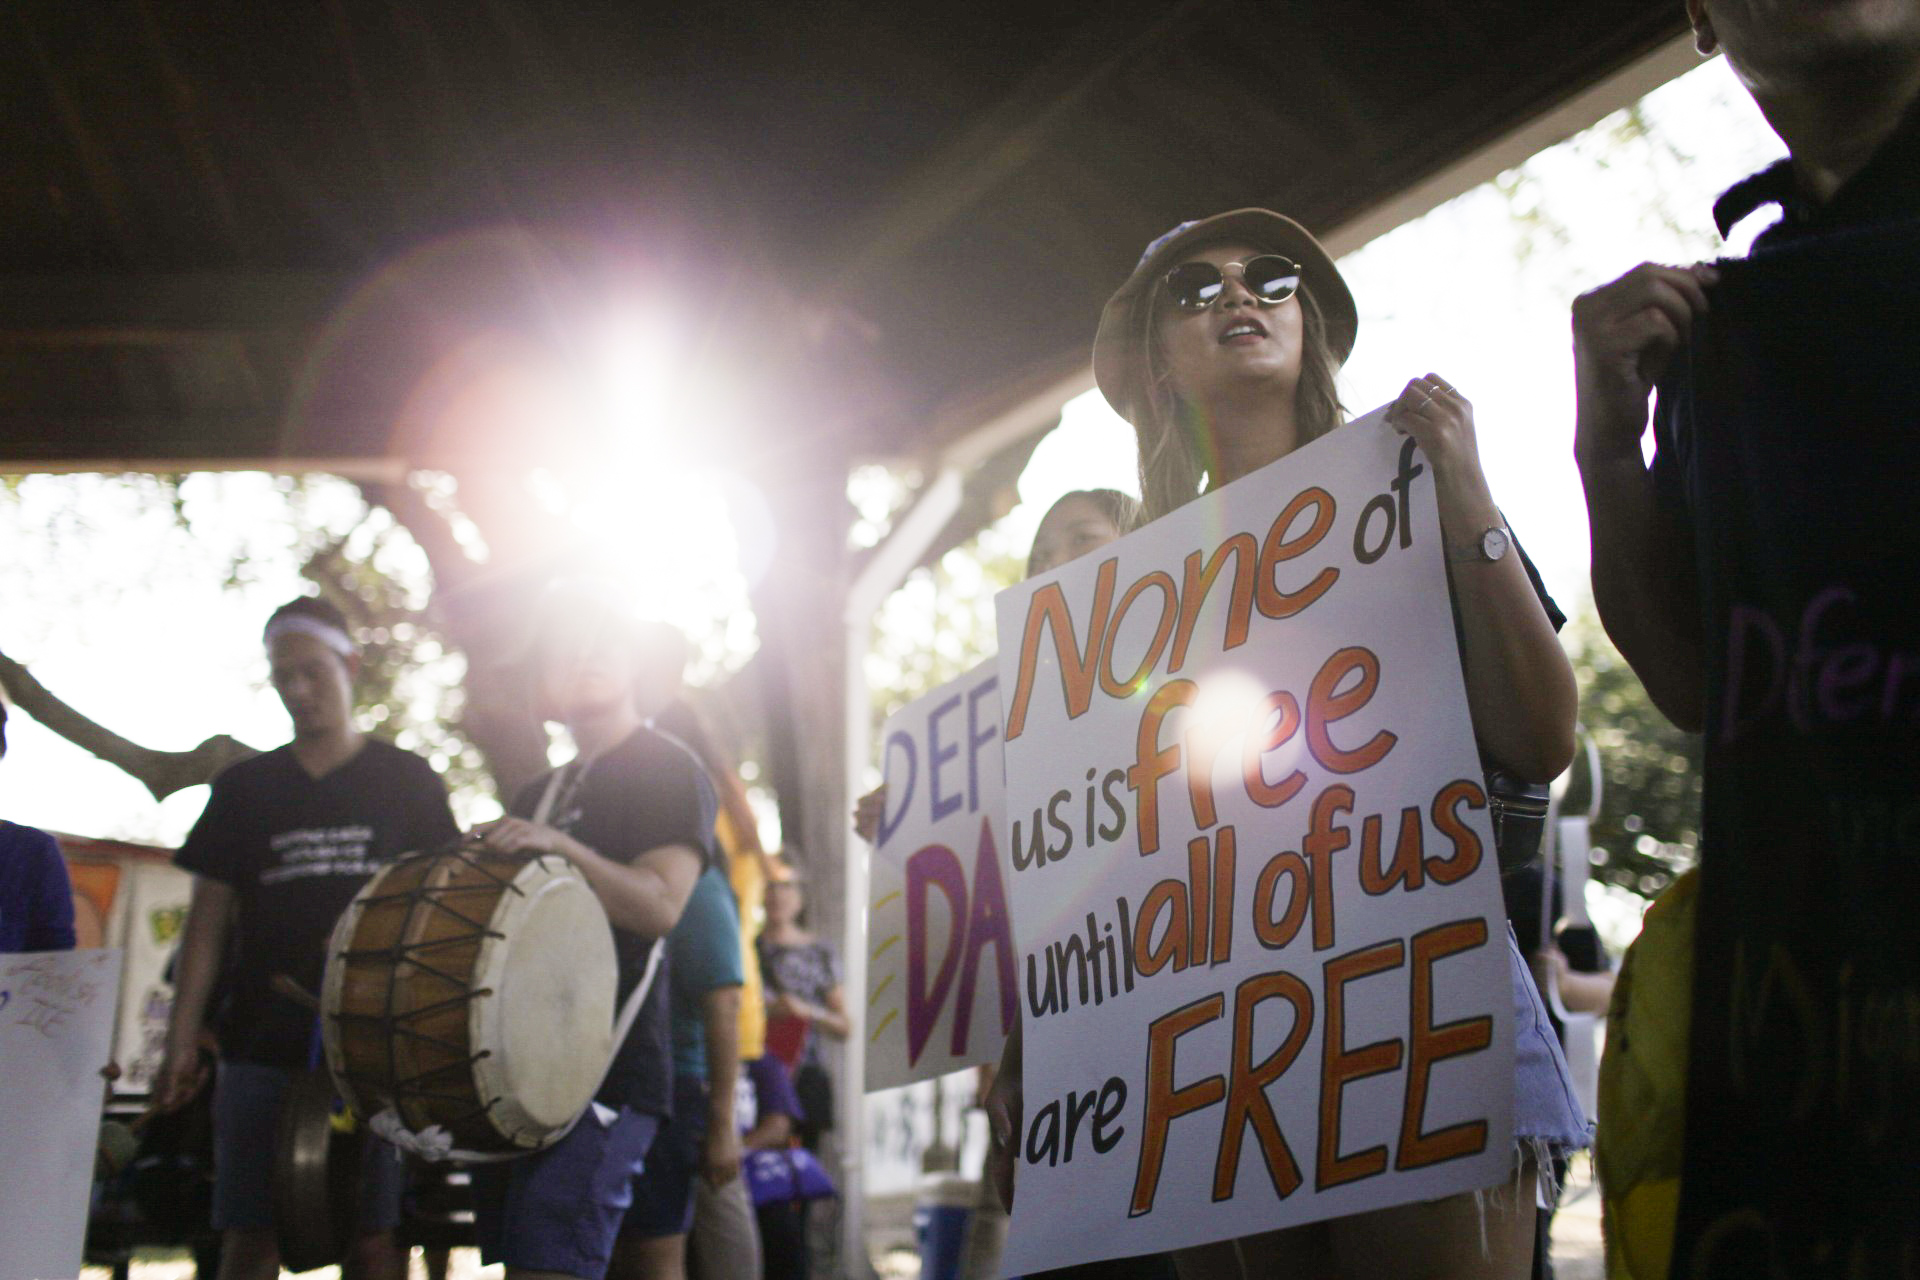 """Protesters holding drums and signs, one sign reading """"None of us is free until all of us are free."""""""